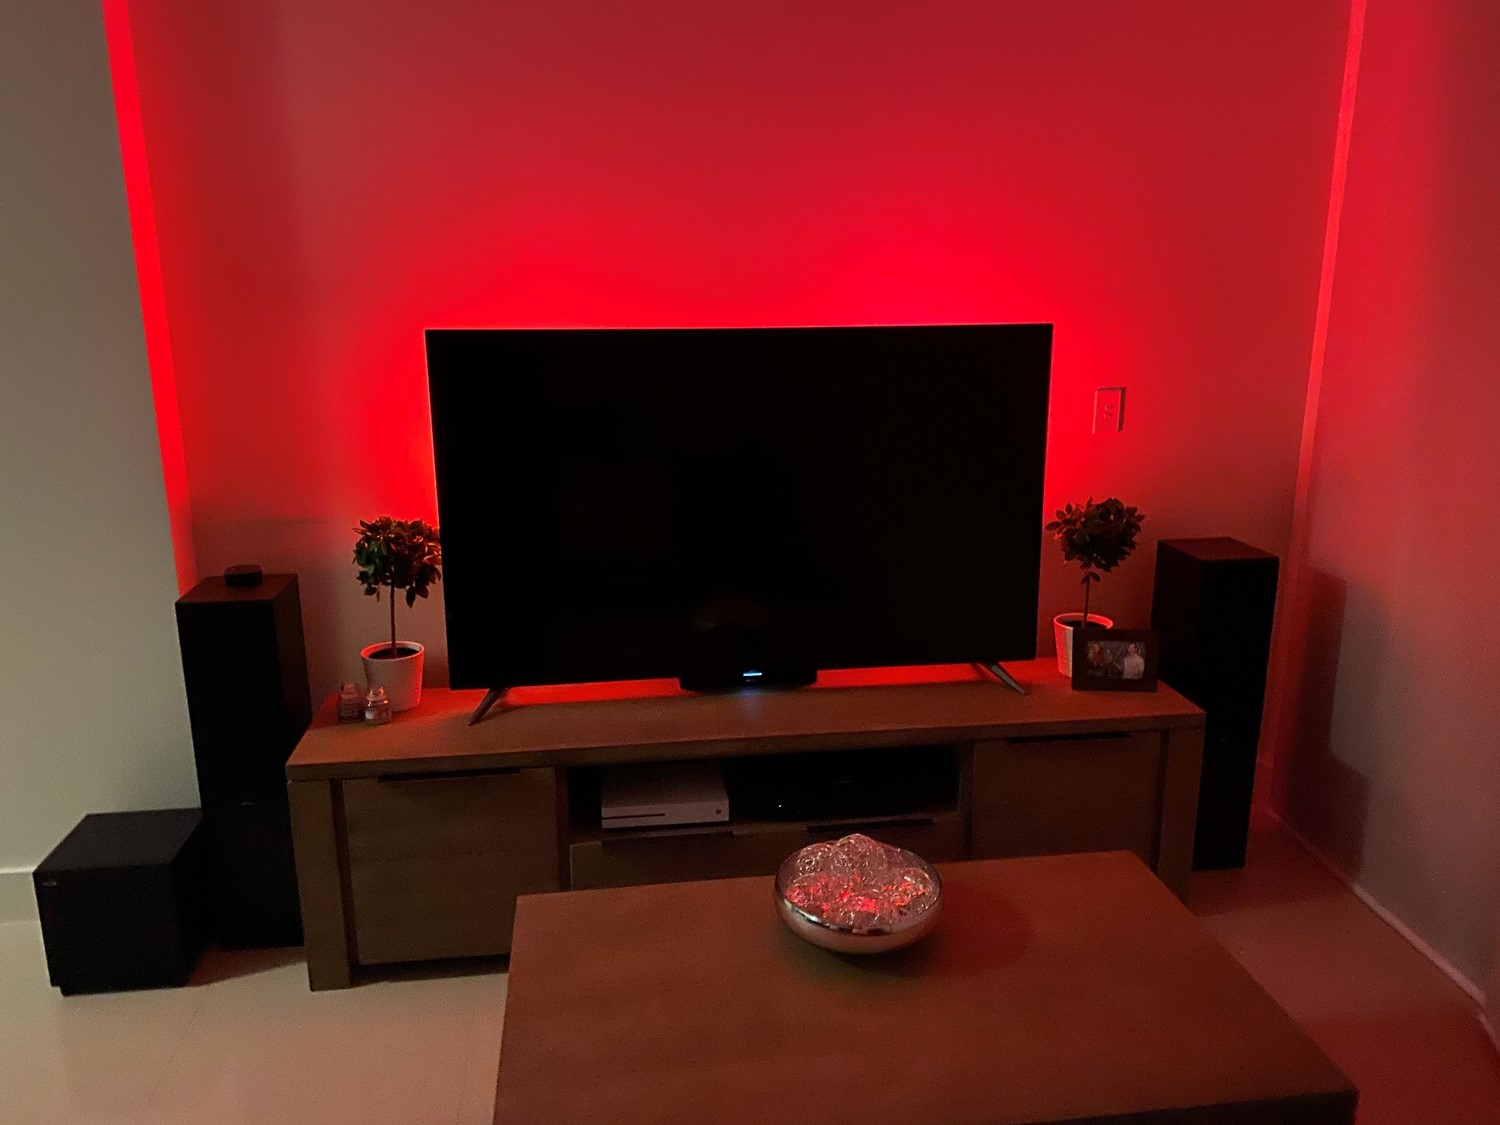 Philips Hue Bars Both Red